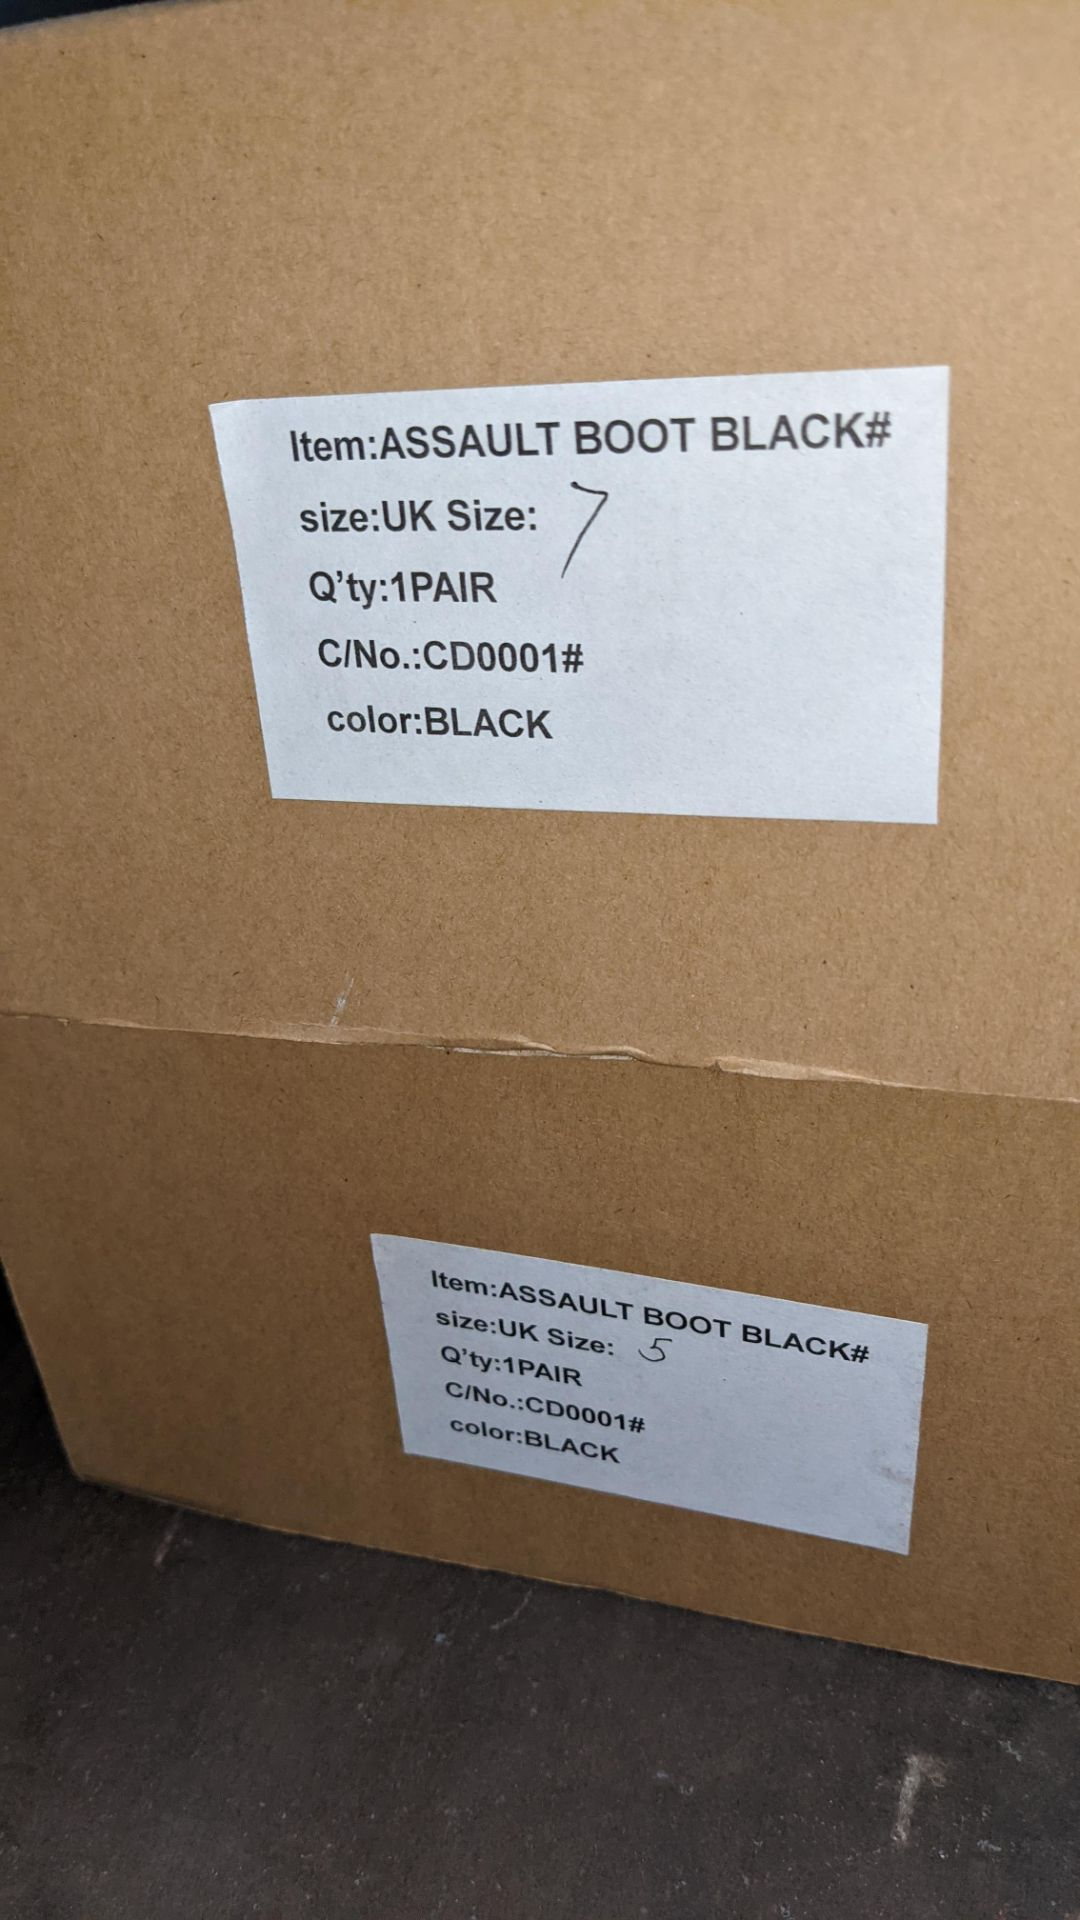 2 pairs of UK black assault boots (sizes 5 & 7) - Image 2 of 4